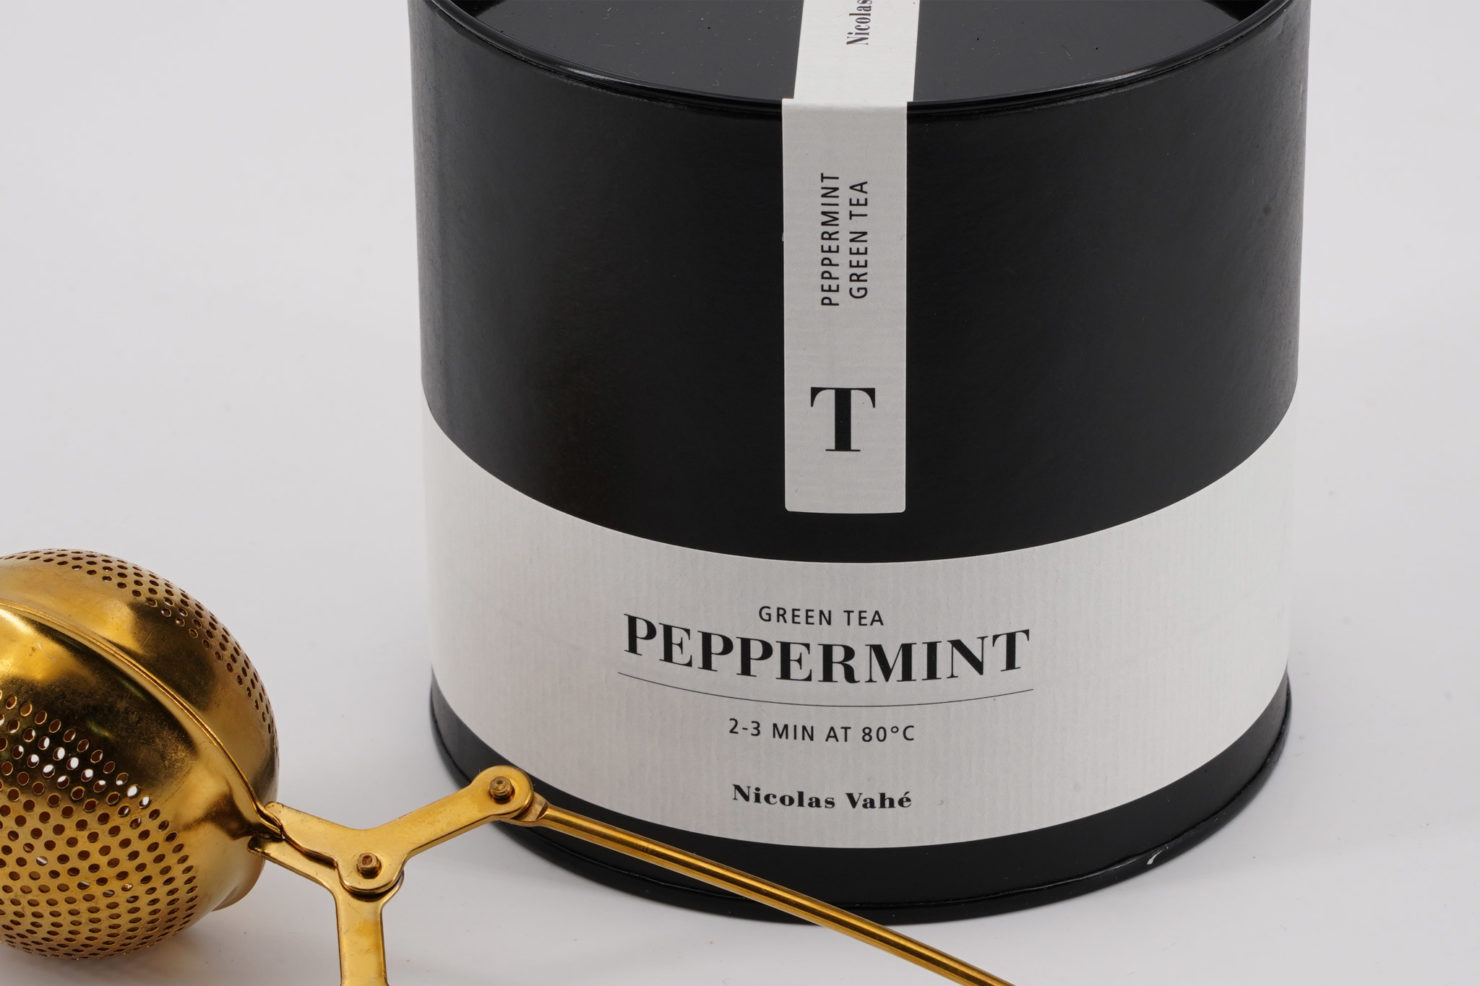 GREEN TEA, PEPPERMINT, 100 GR - NICOLAS VAHE